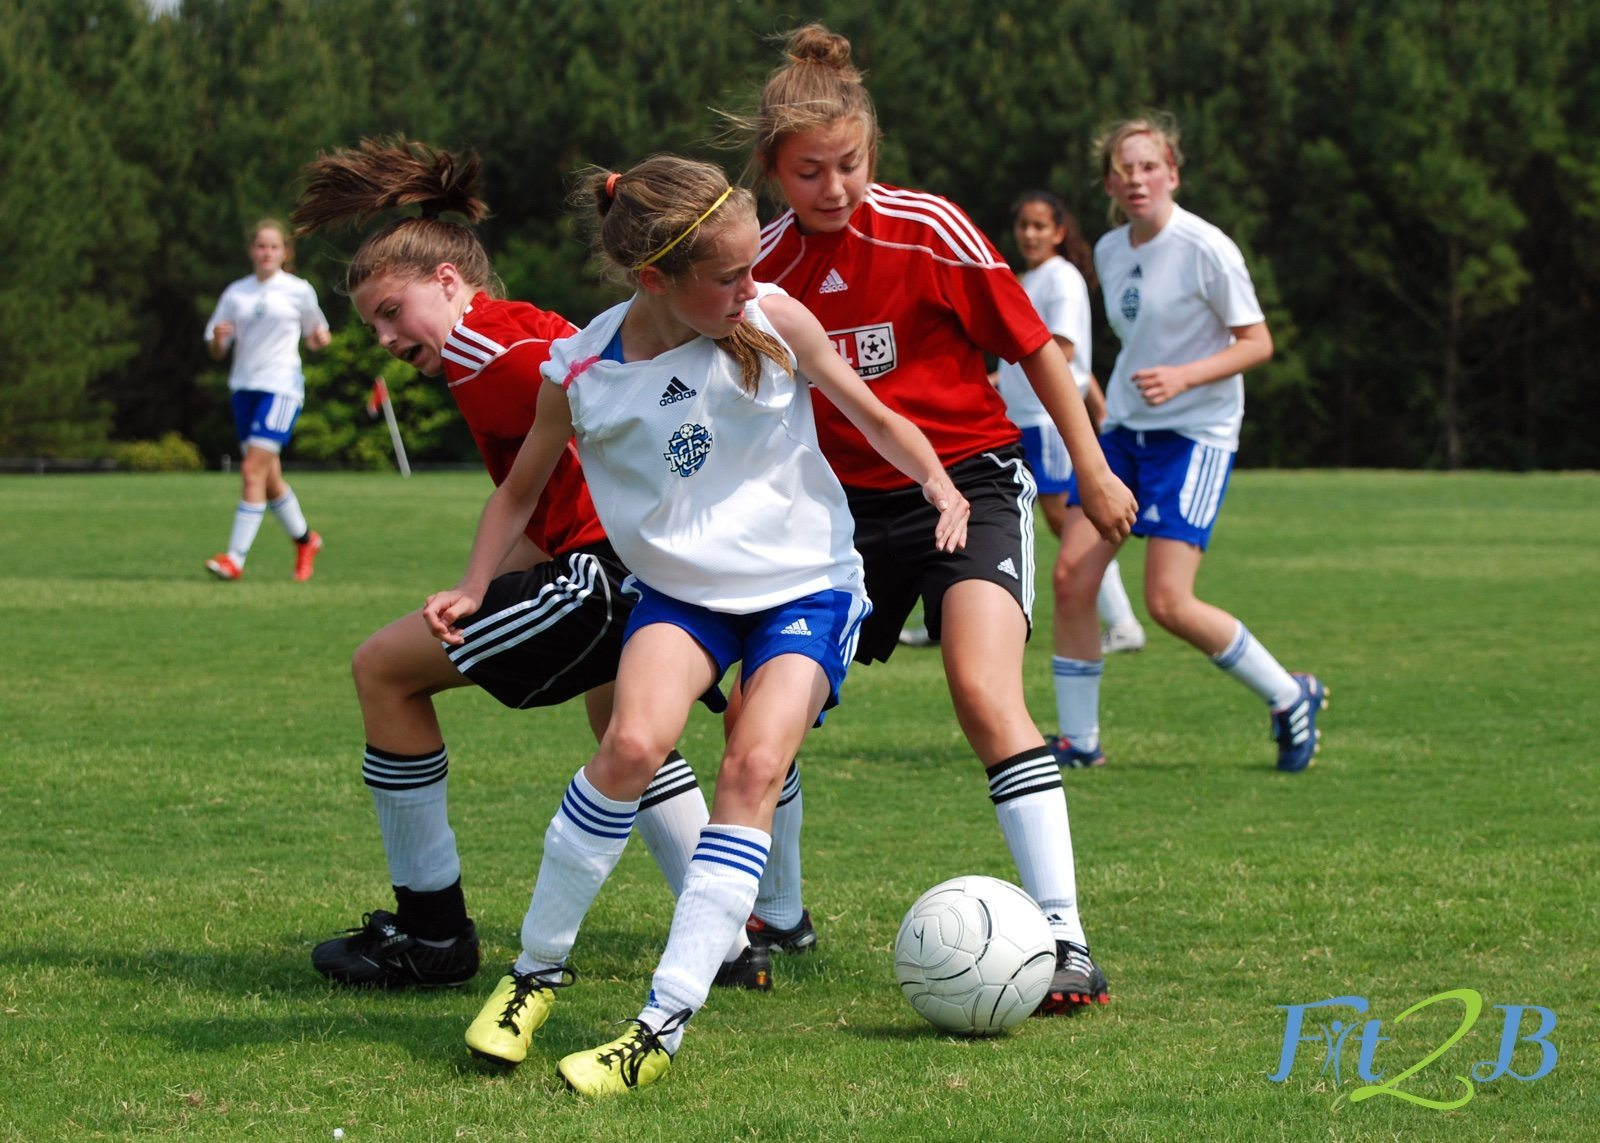 If You're Raising a Young Female Athlete, You Need to Know This! - Fit2B.com